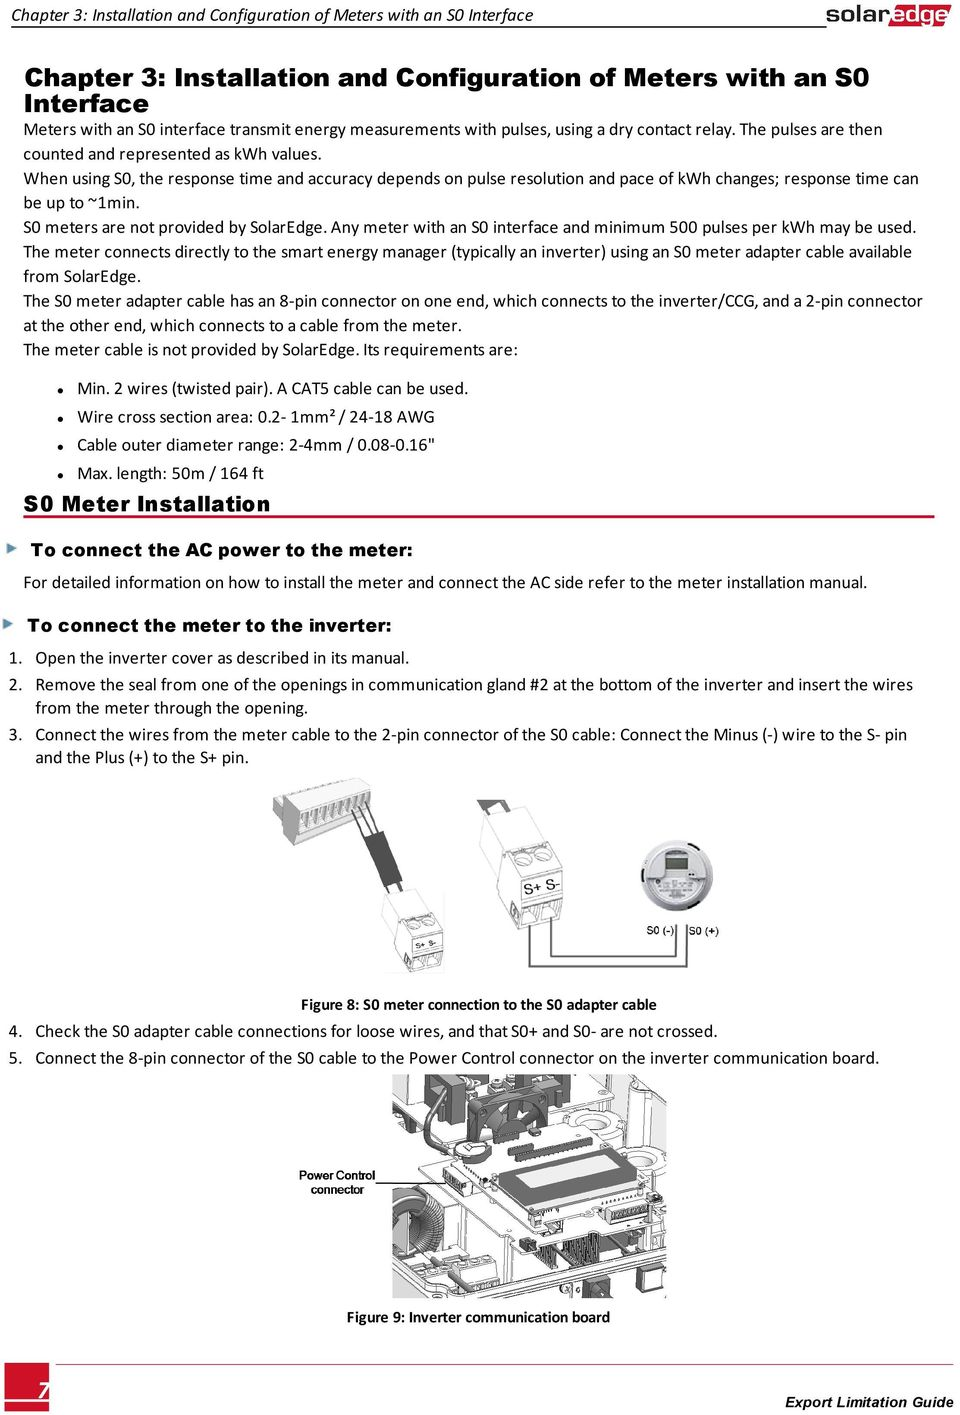 Solaredge Export Limitation Guide Pdf Cat5 Cable Wiring When Using S0 The Response Time And Accuracy Depends On Pulse Resolution Pace Of